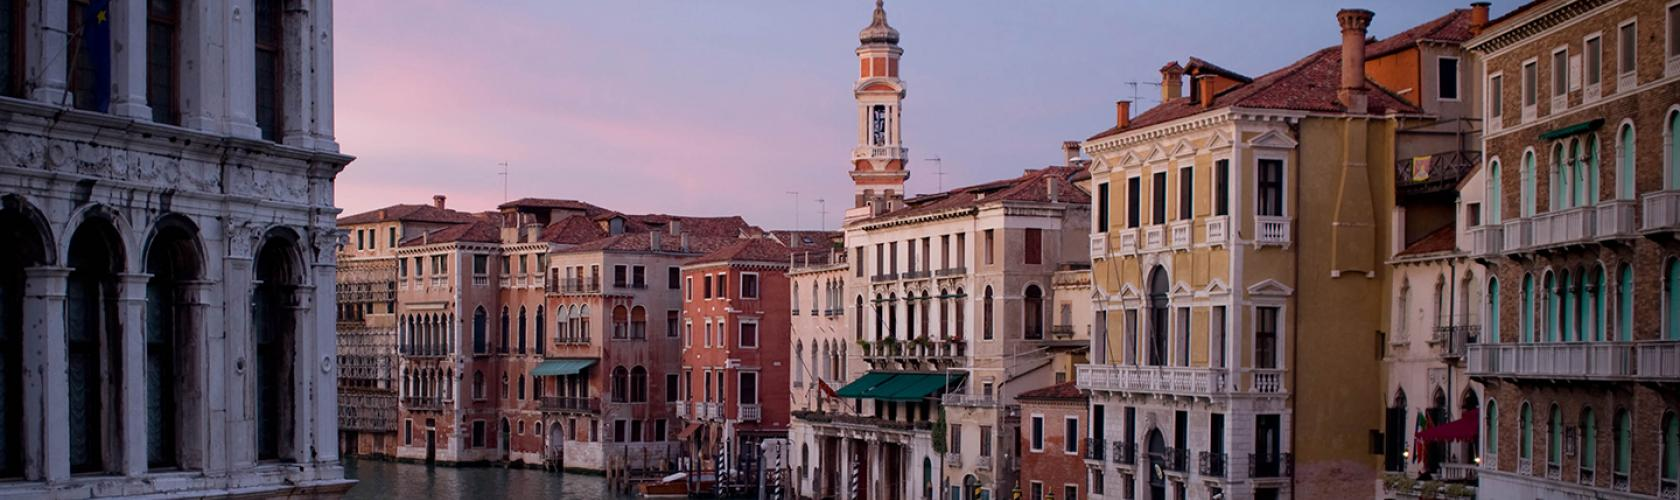 Frieze S Guide To Venice What To See At This Year S Biennale Frieze